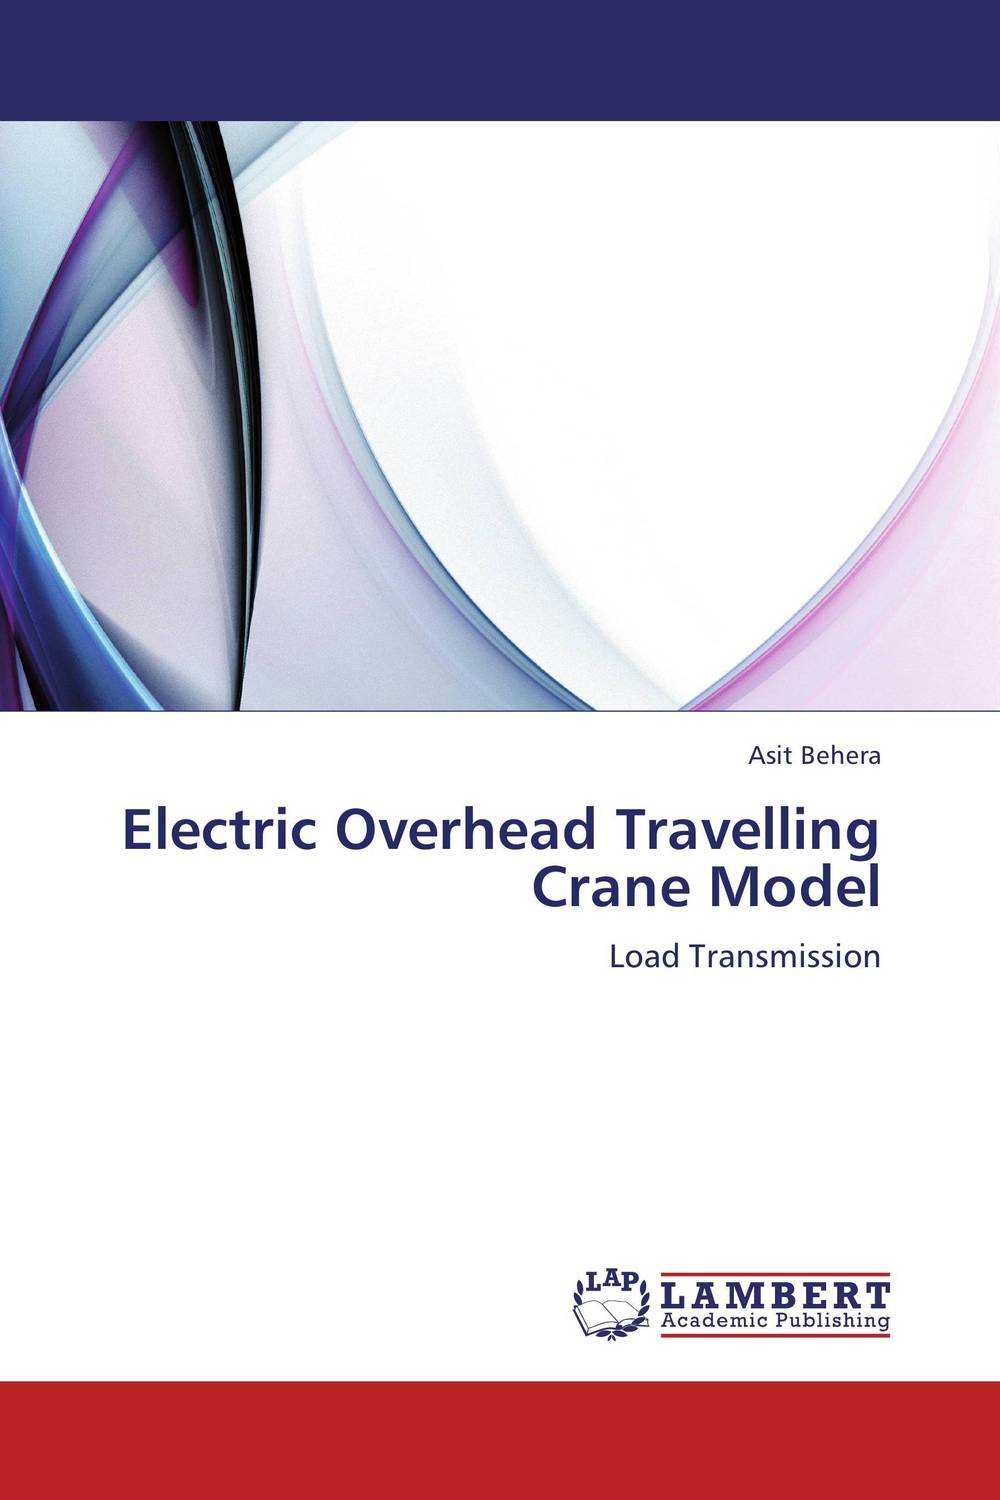 Electric Overhead Travelling Crane Model